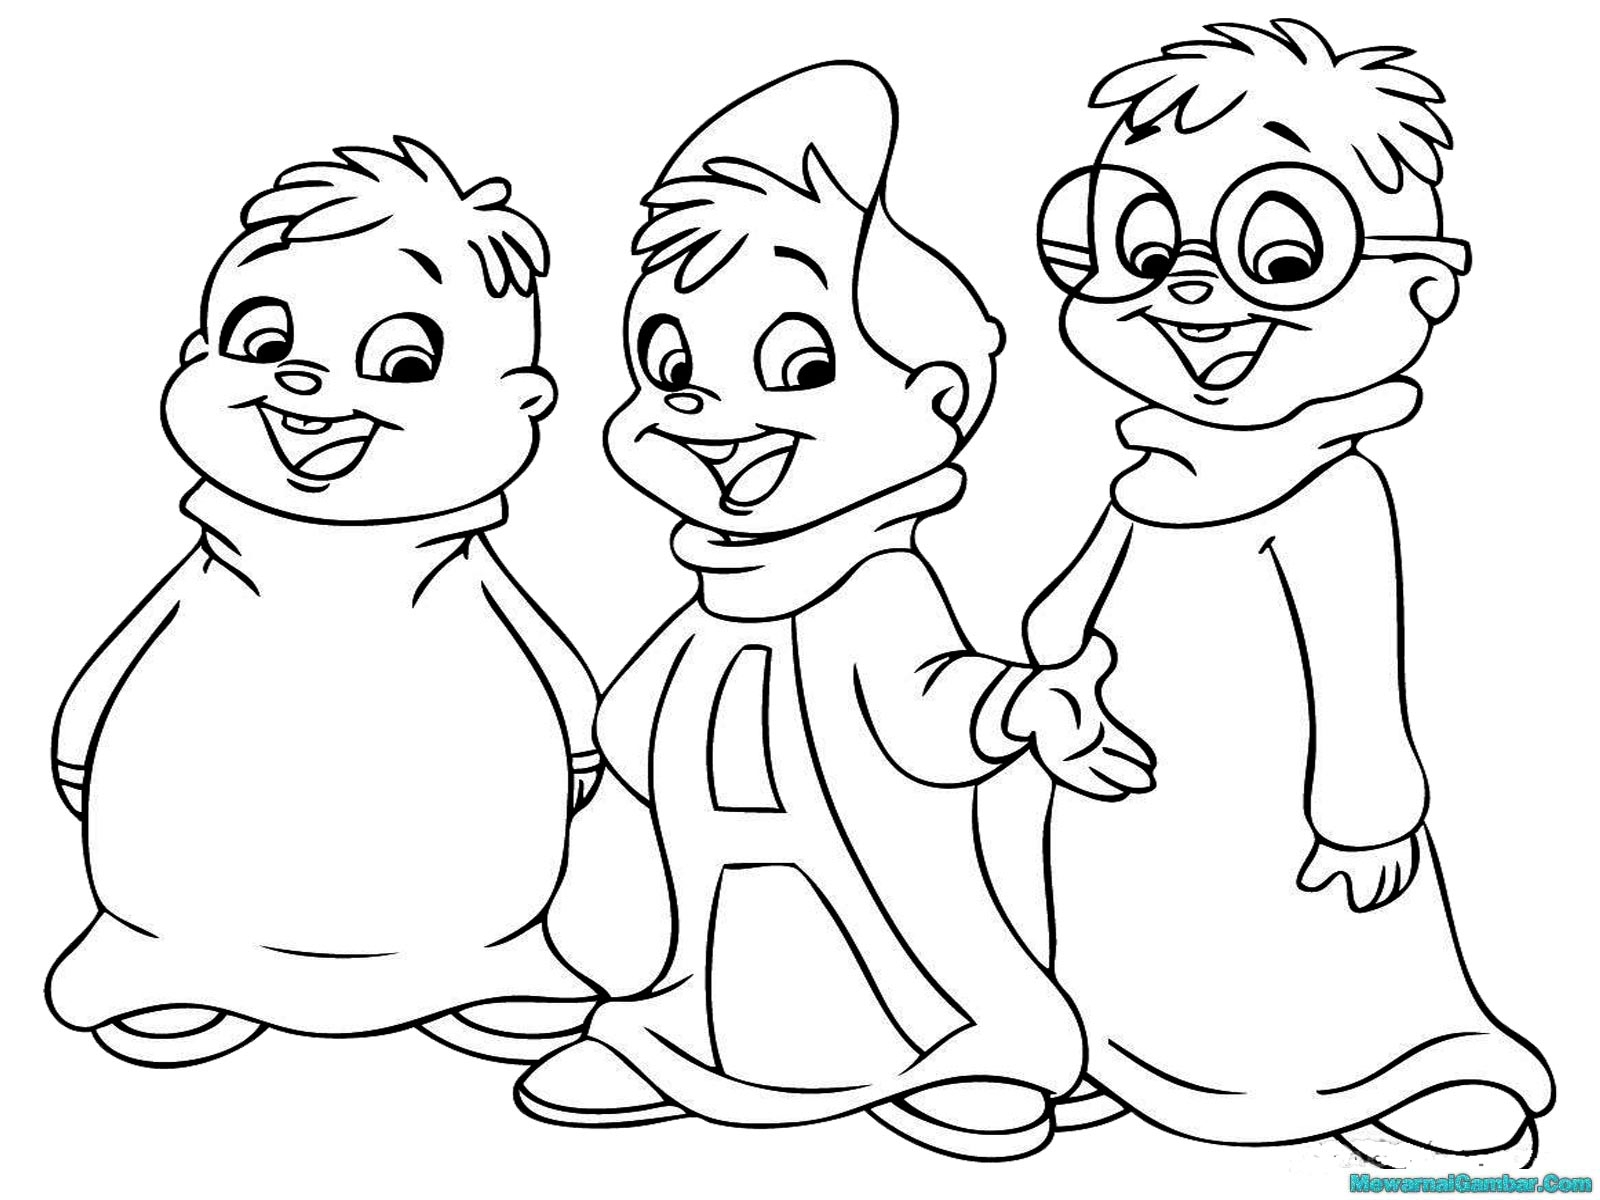 Printable Chipmunk Coloring Pages for Kids